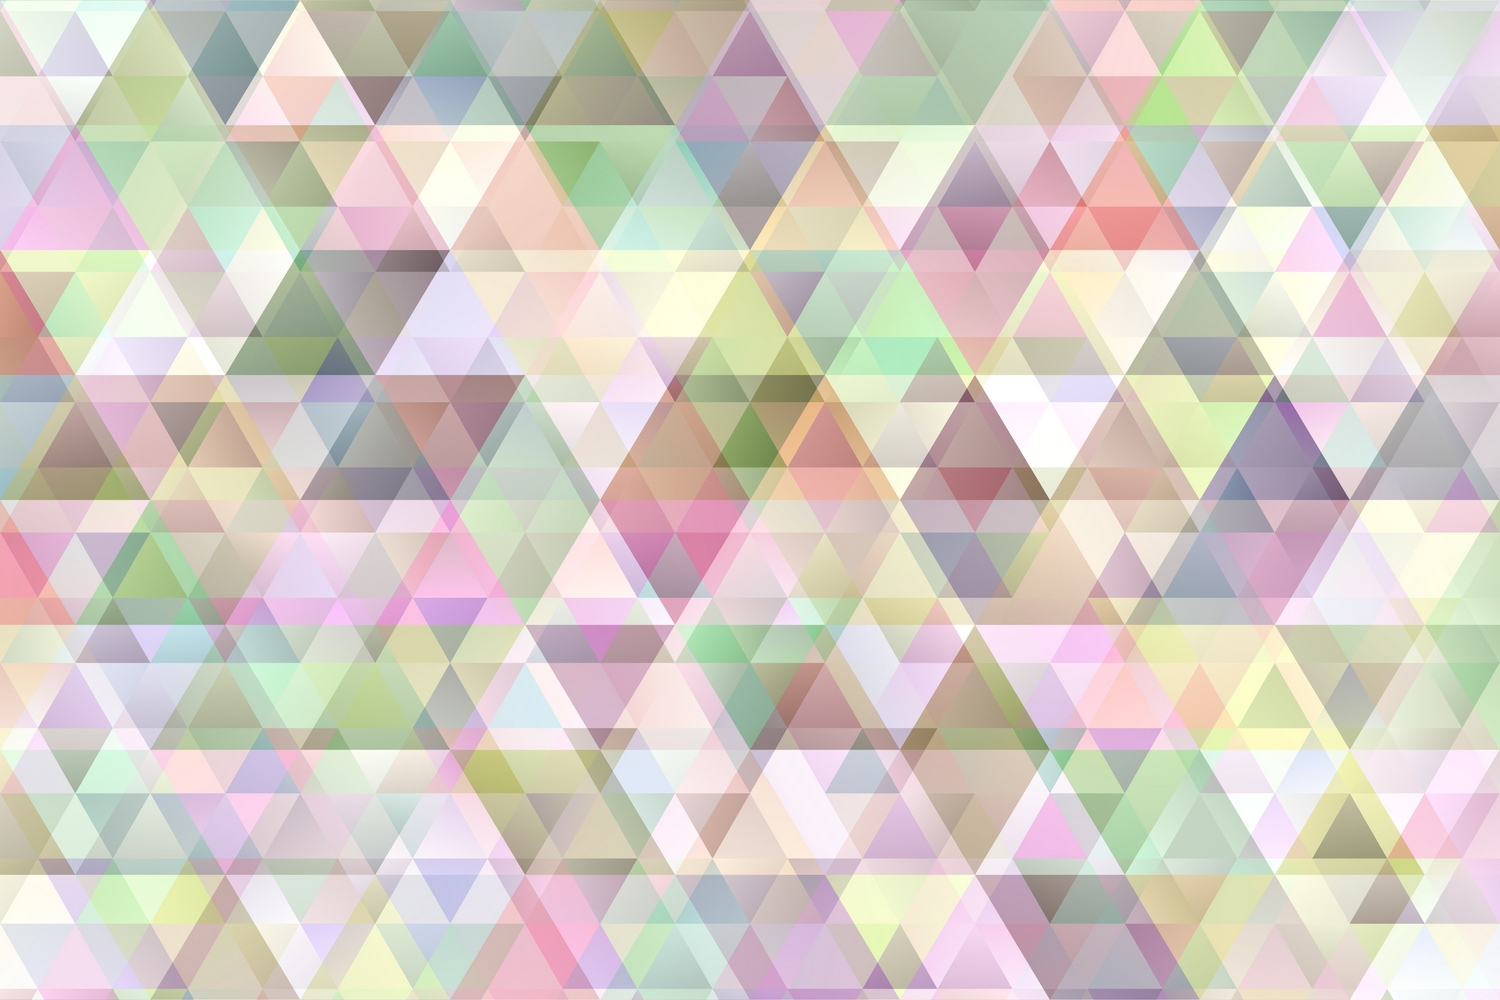 24 Gradient Polygon Backgrounds AI, EPS, JPG 5000x5000 example image 23